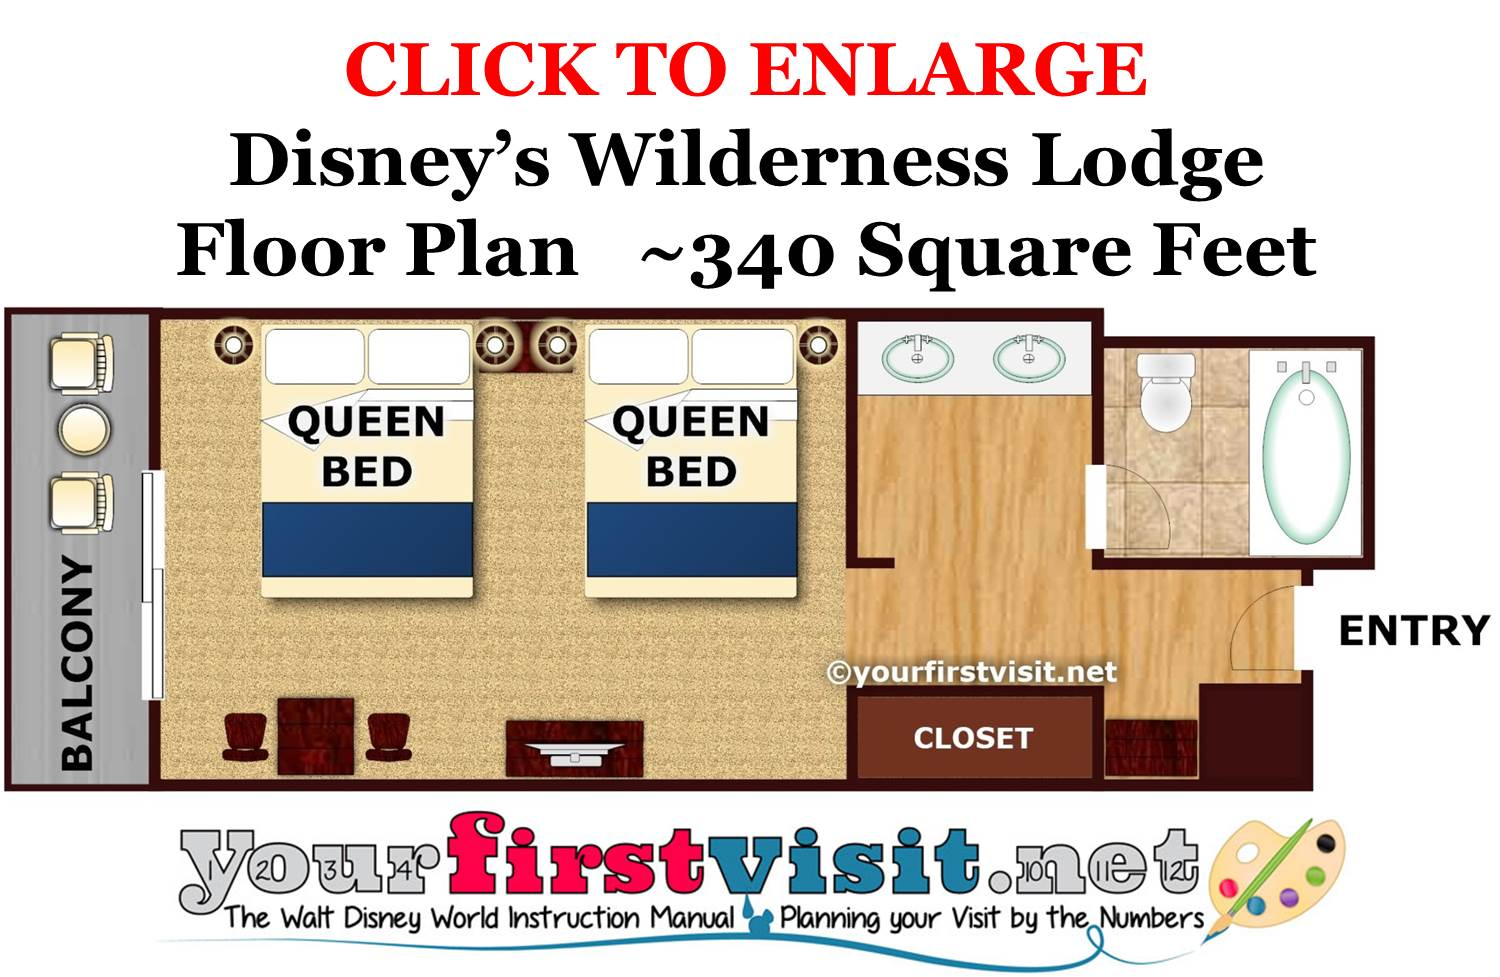 Floor Plan Disney's Wilderness Lodge from yourfirstvisit.net